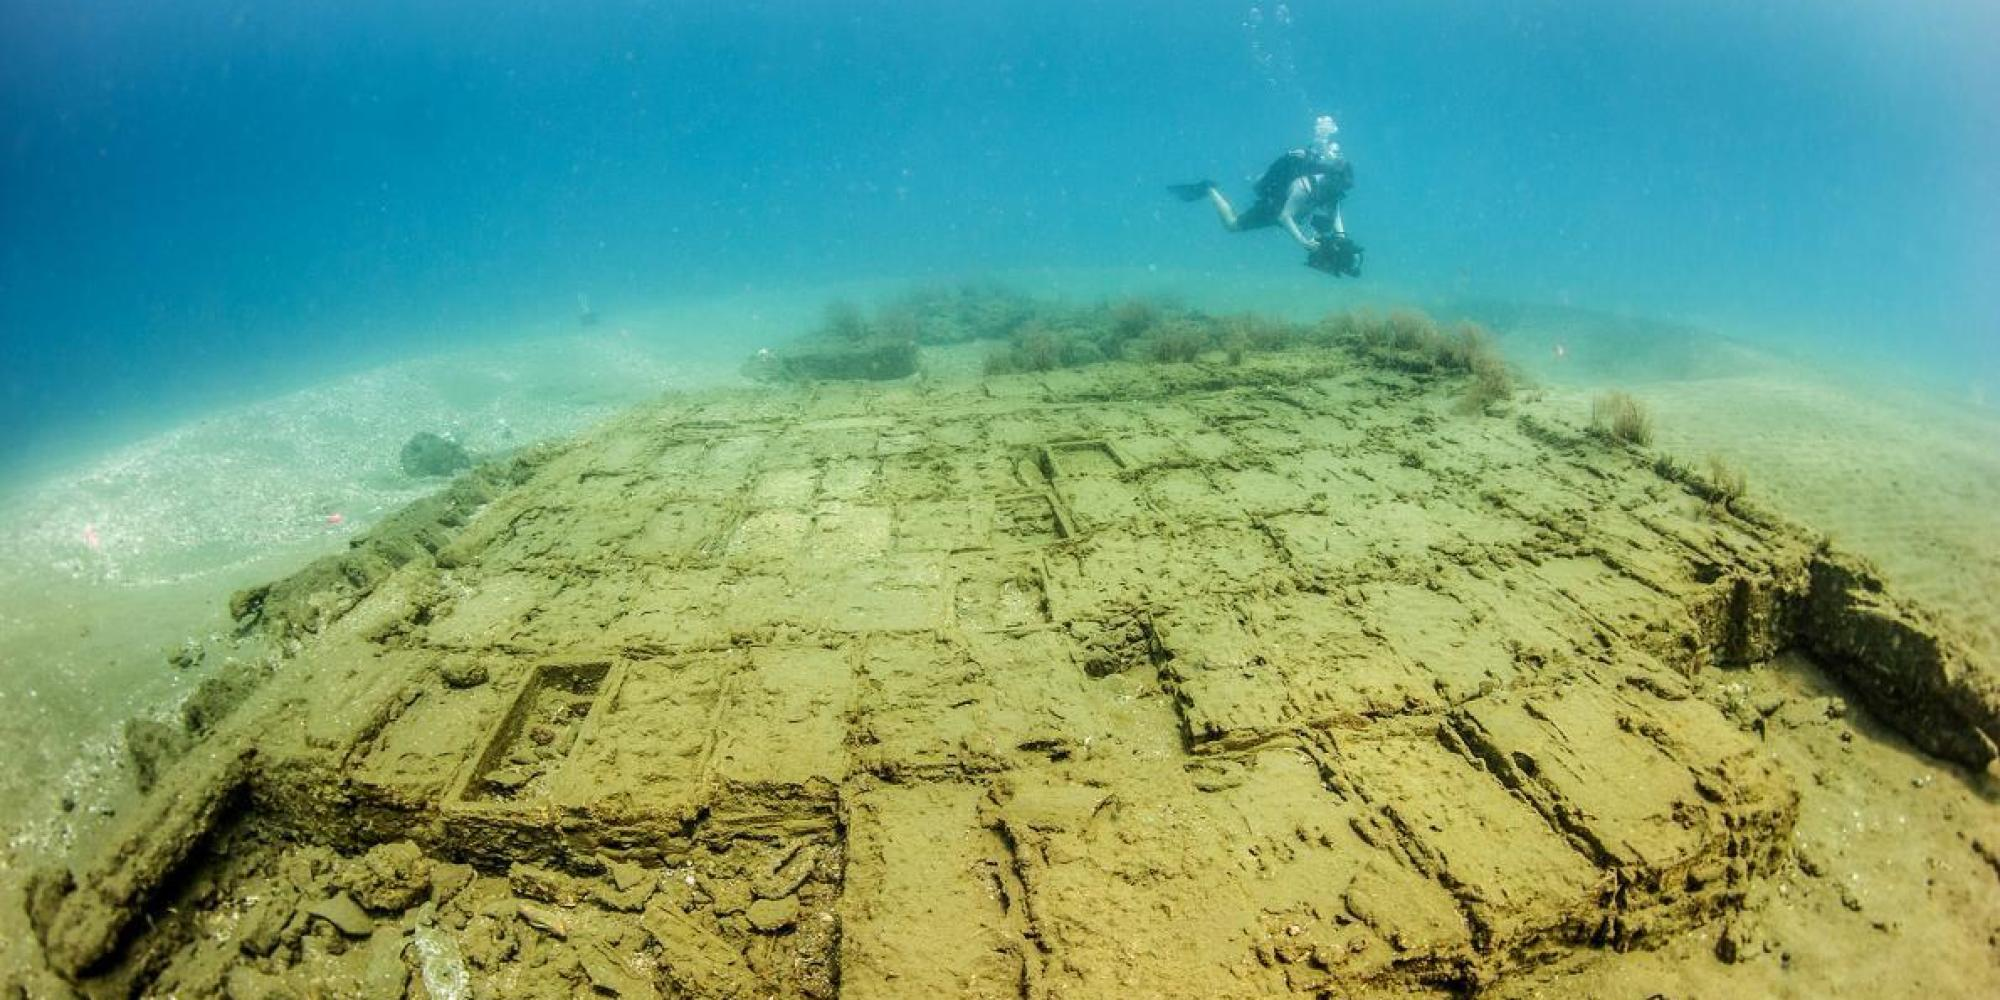 Scientists Identify Mysterious, Sword-Filled Caribbean Shipwreck ...